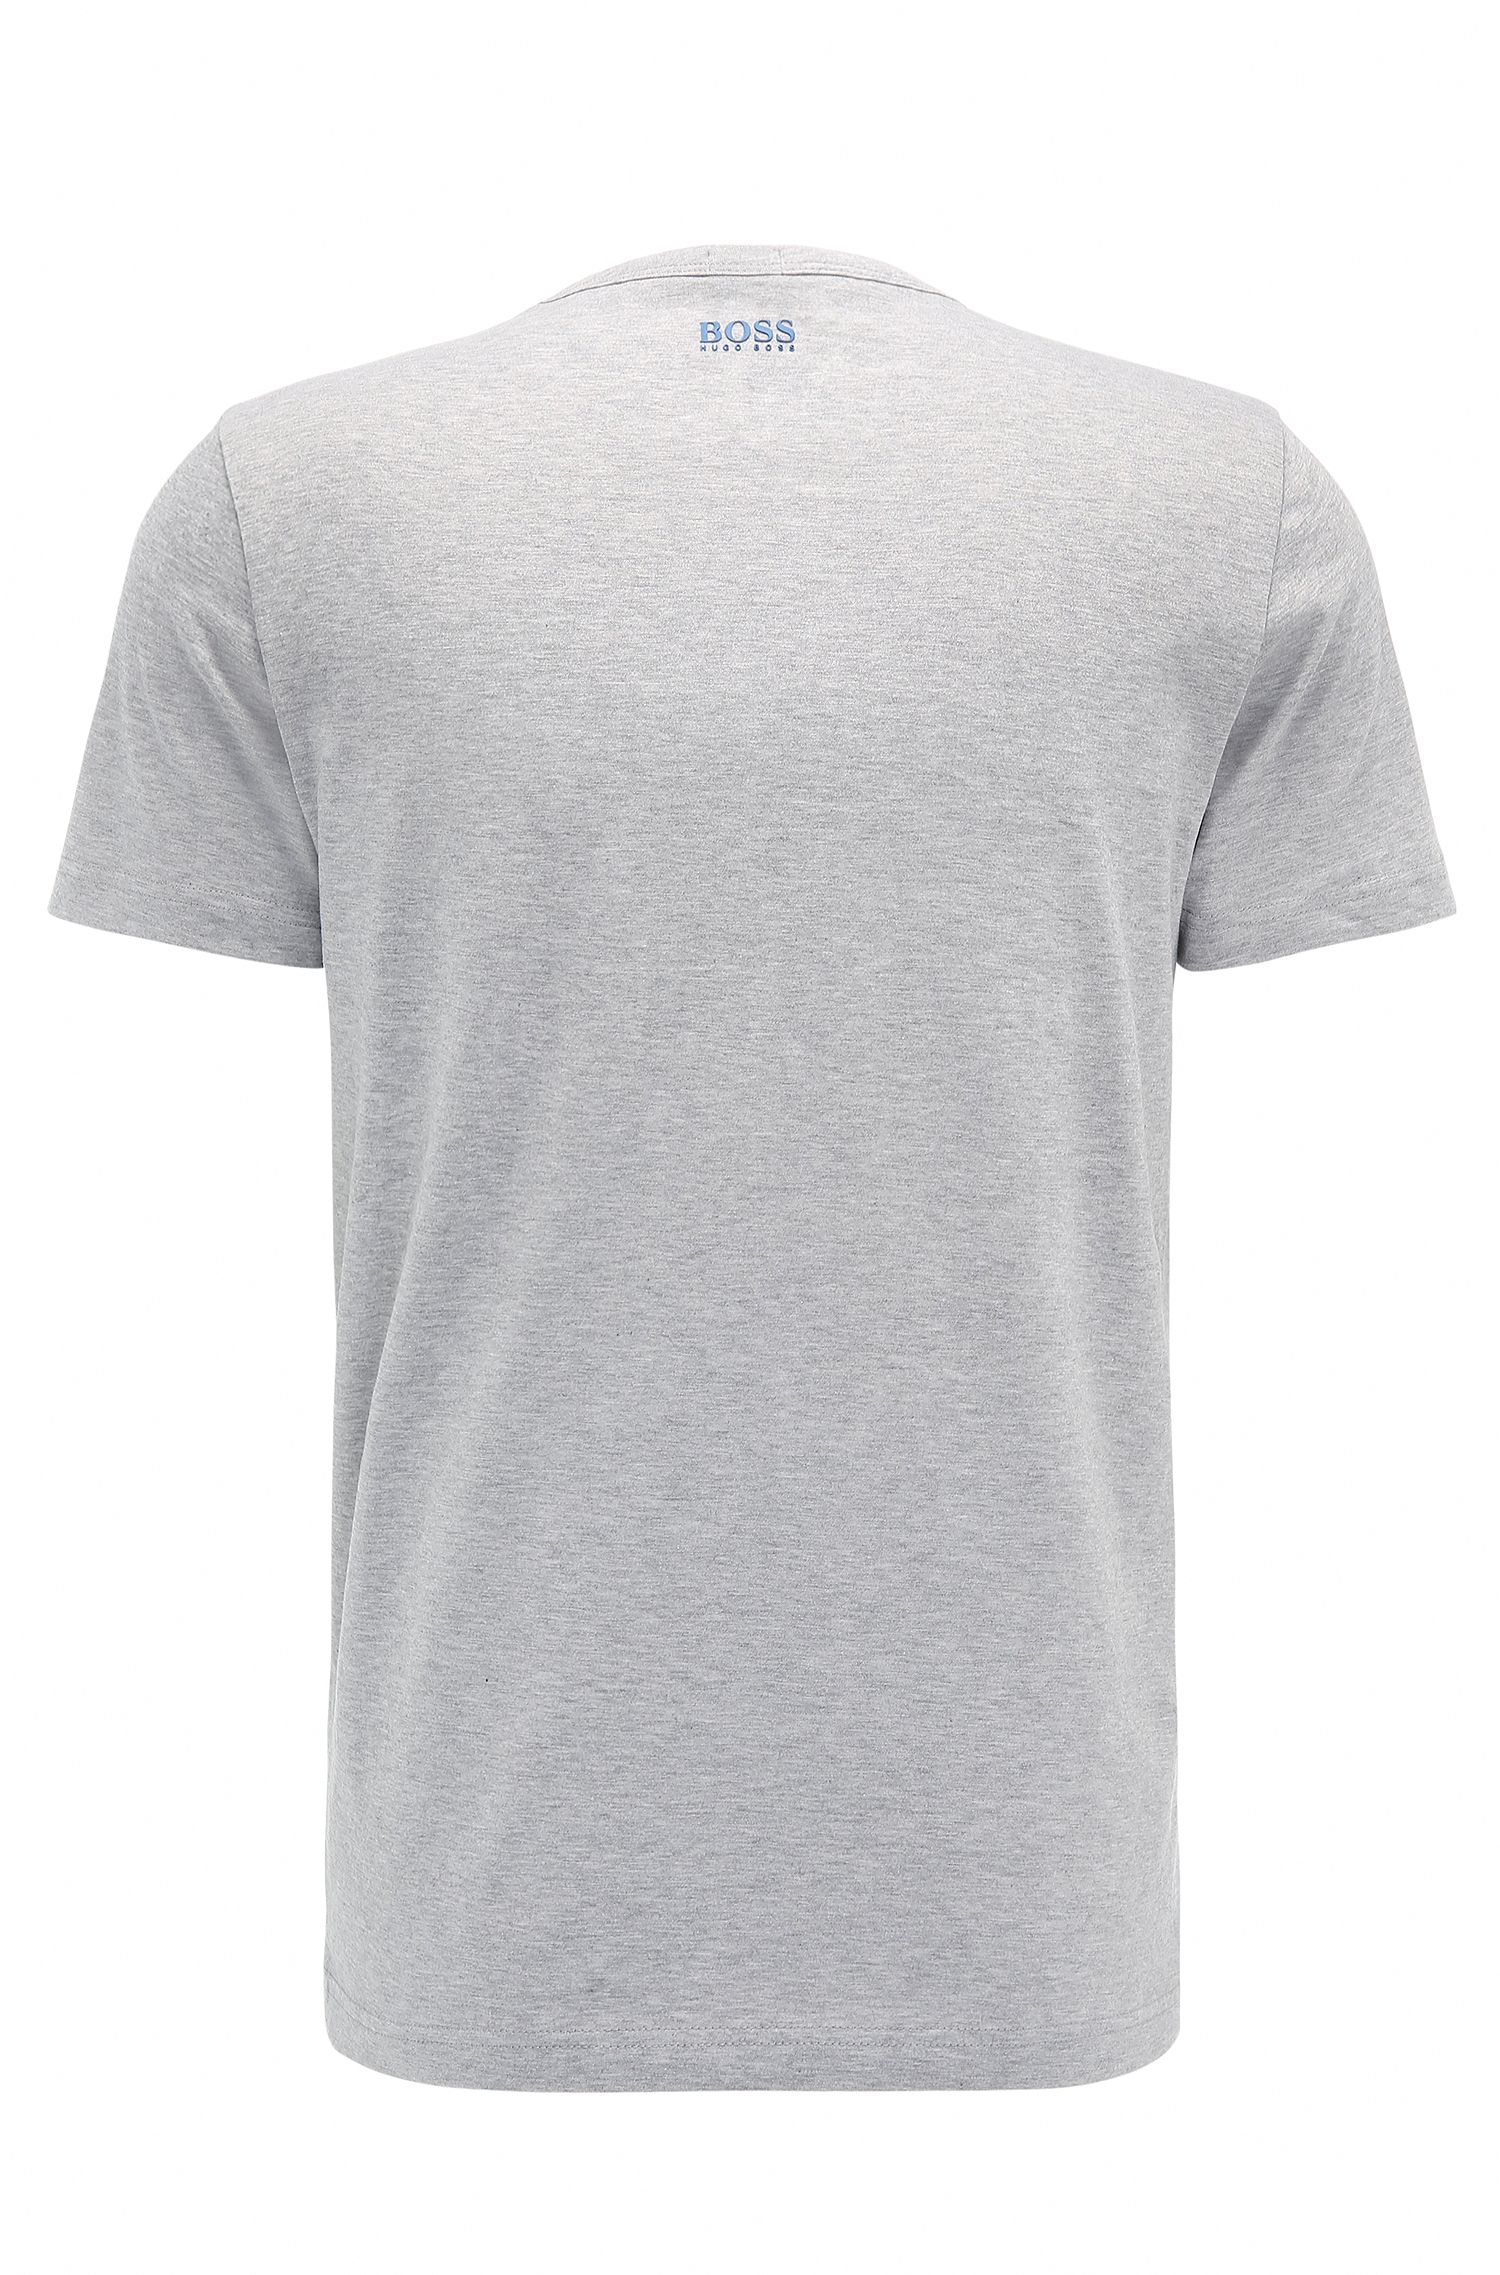 T-shirt Regular Fit en coton doux avec logo